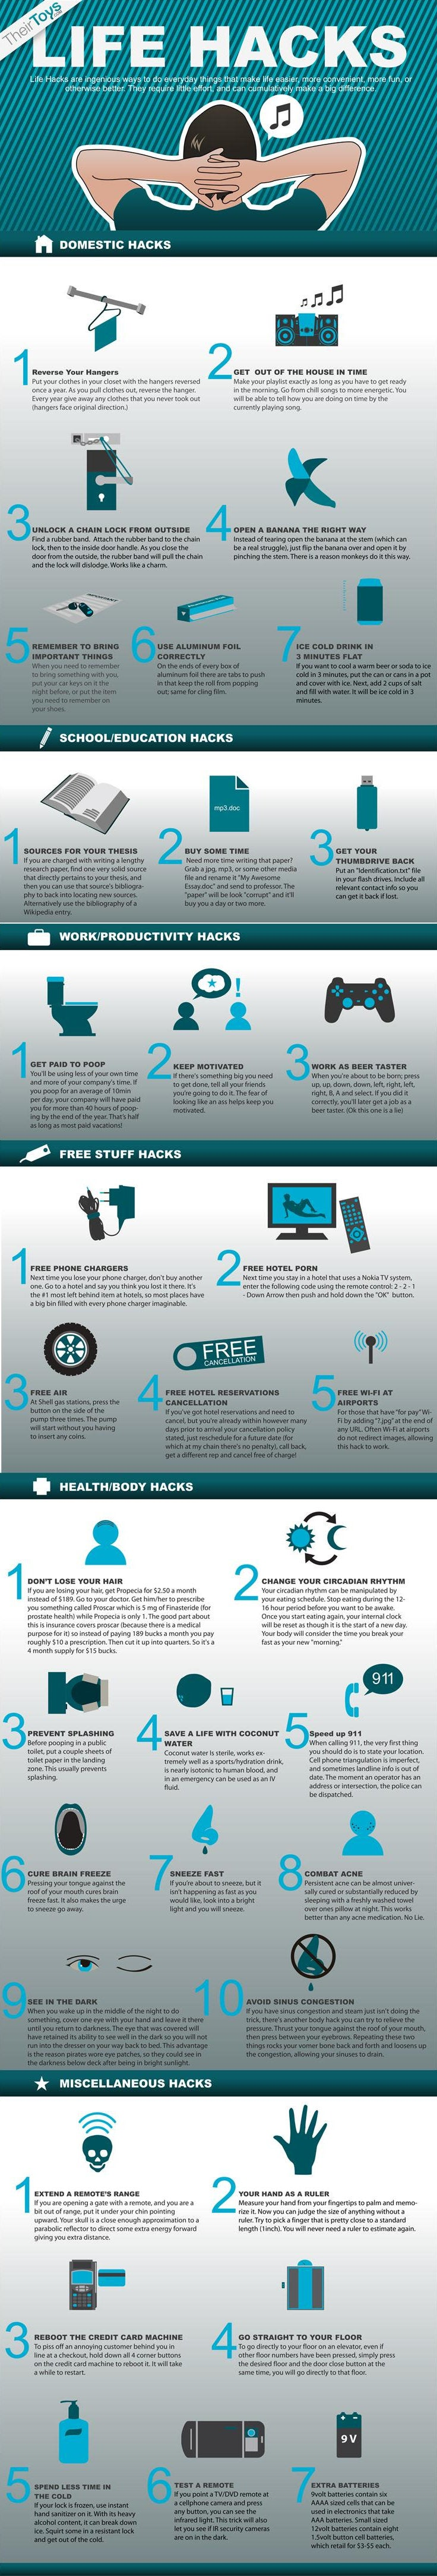 35 MacGyver Tips, Clever Uses, and Other Life Hacks in One Infographic